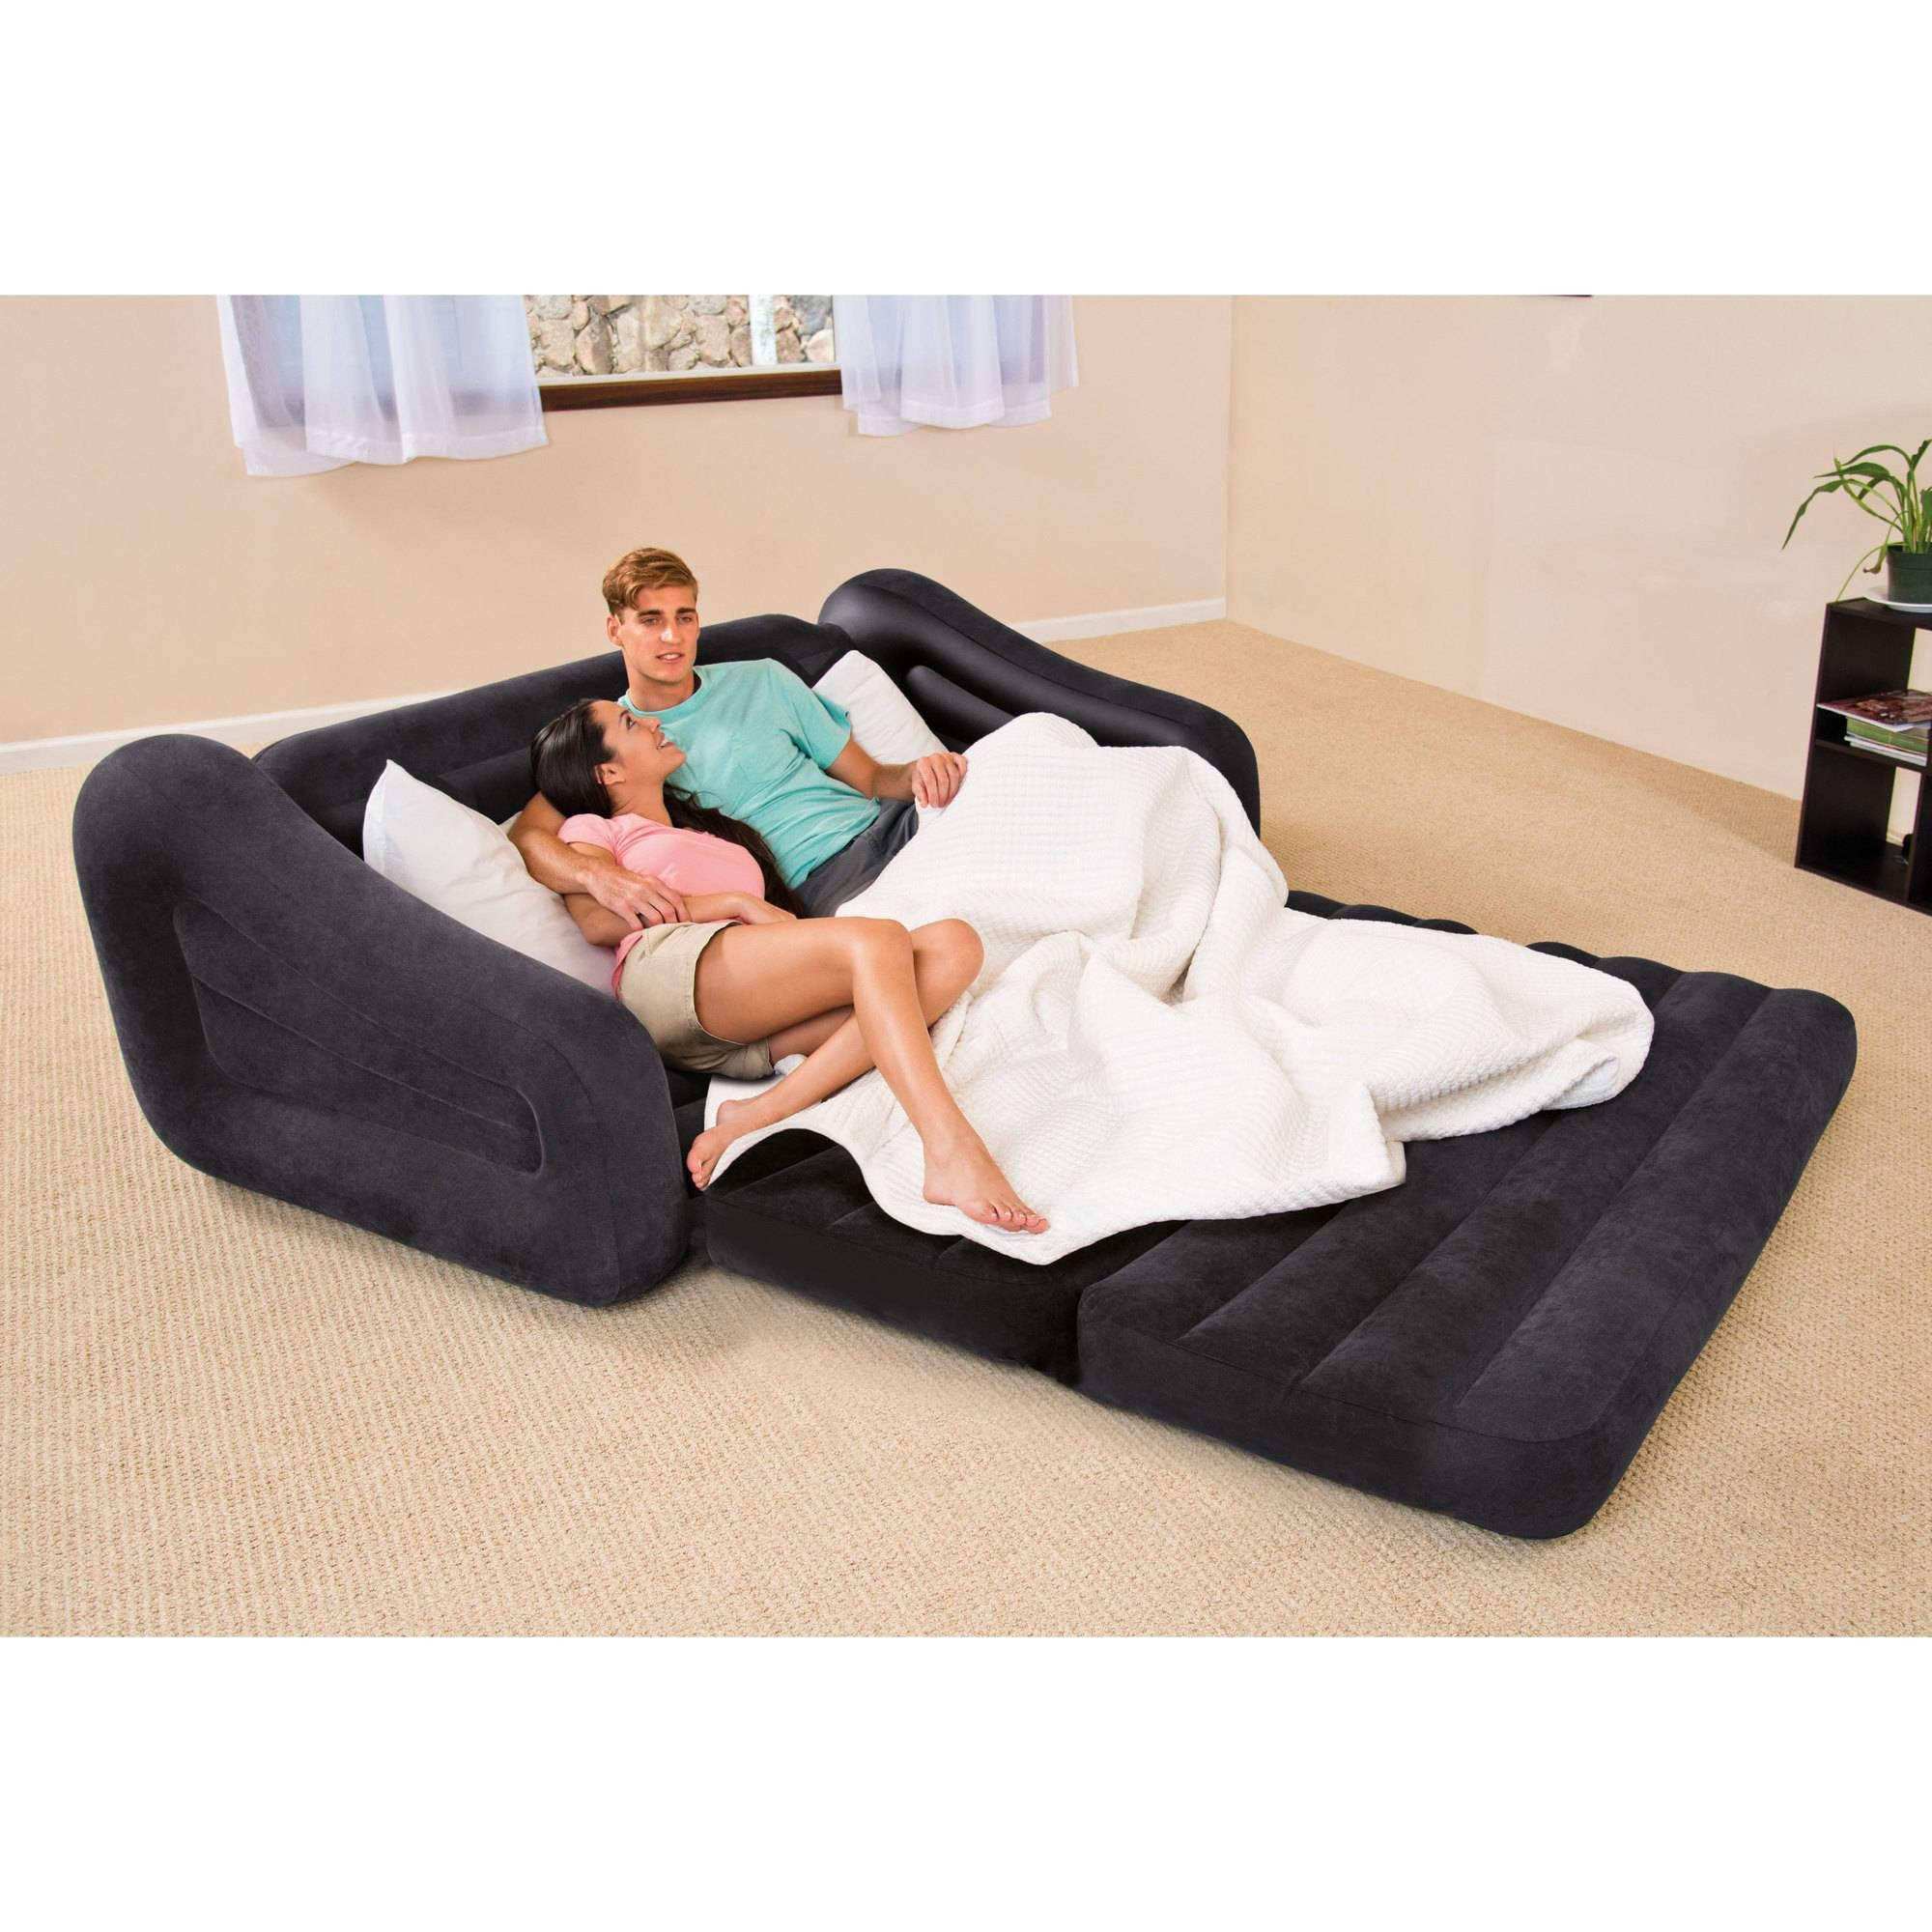 Intex Queen Inflatable Pull Out Sofa Bed – Walmart In Sofa Beds With Mattress Support (View 6 of 15)